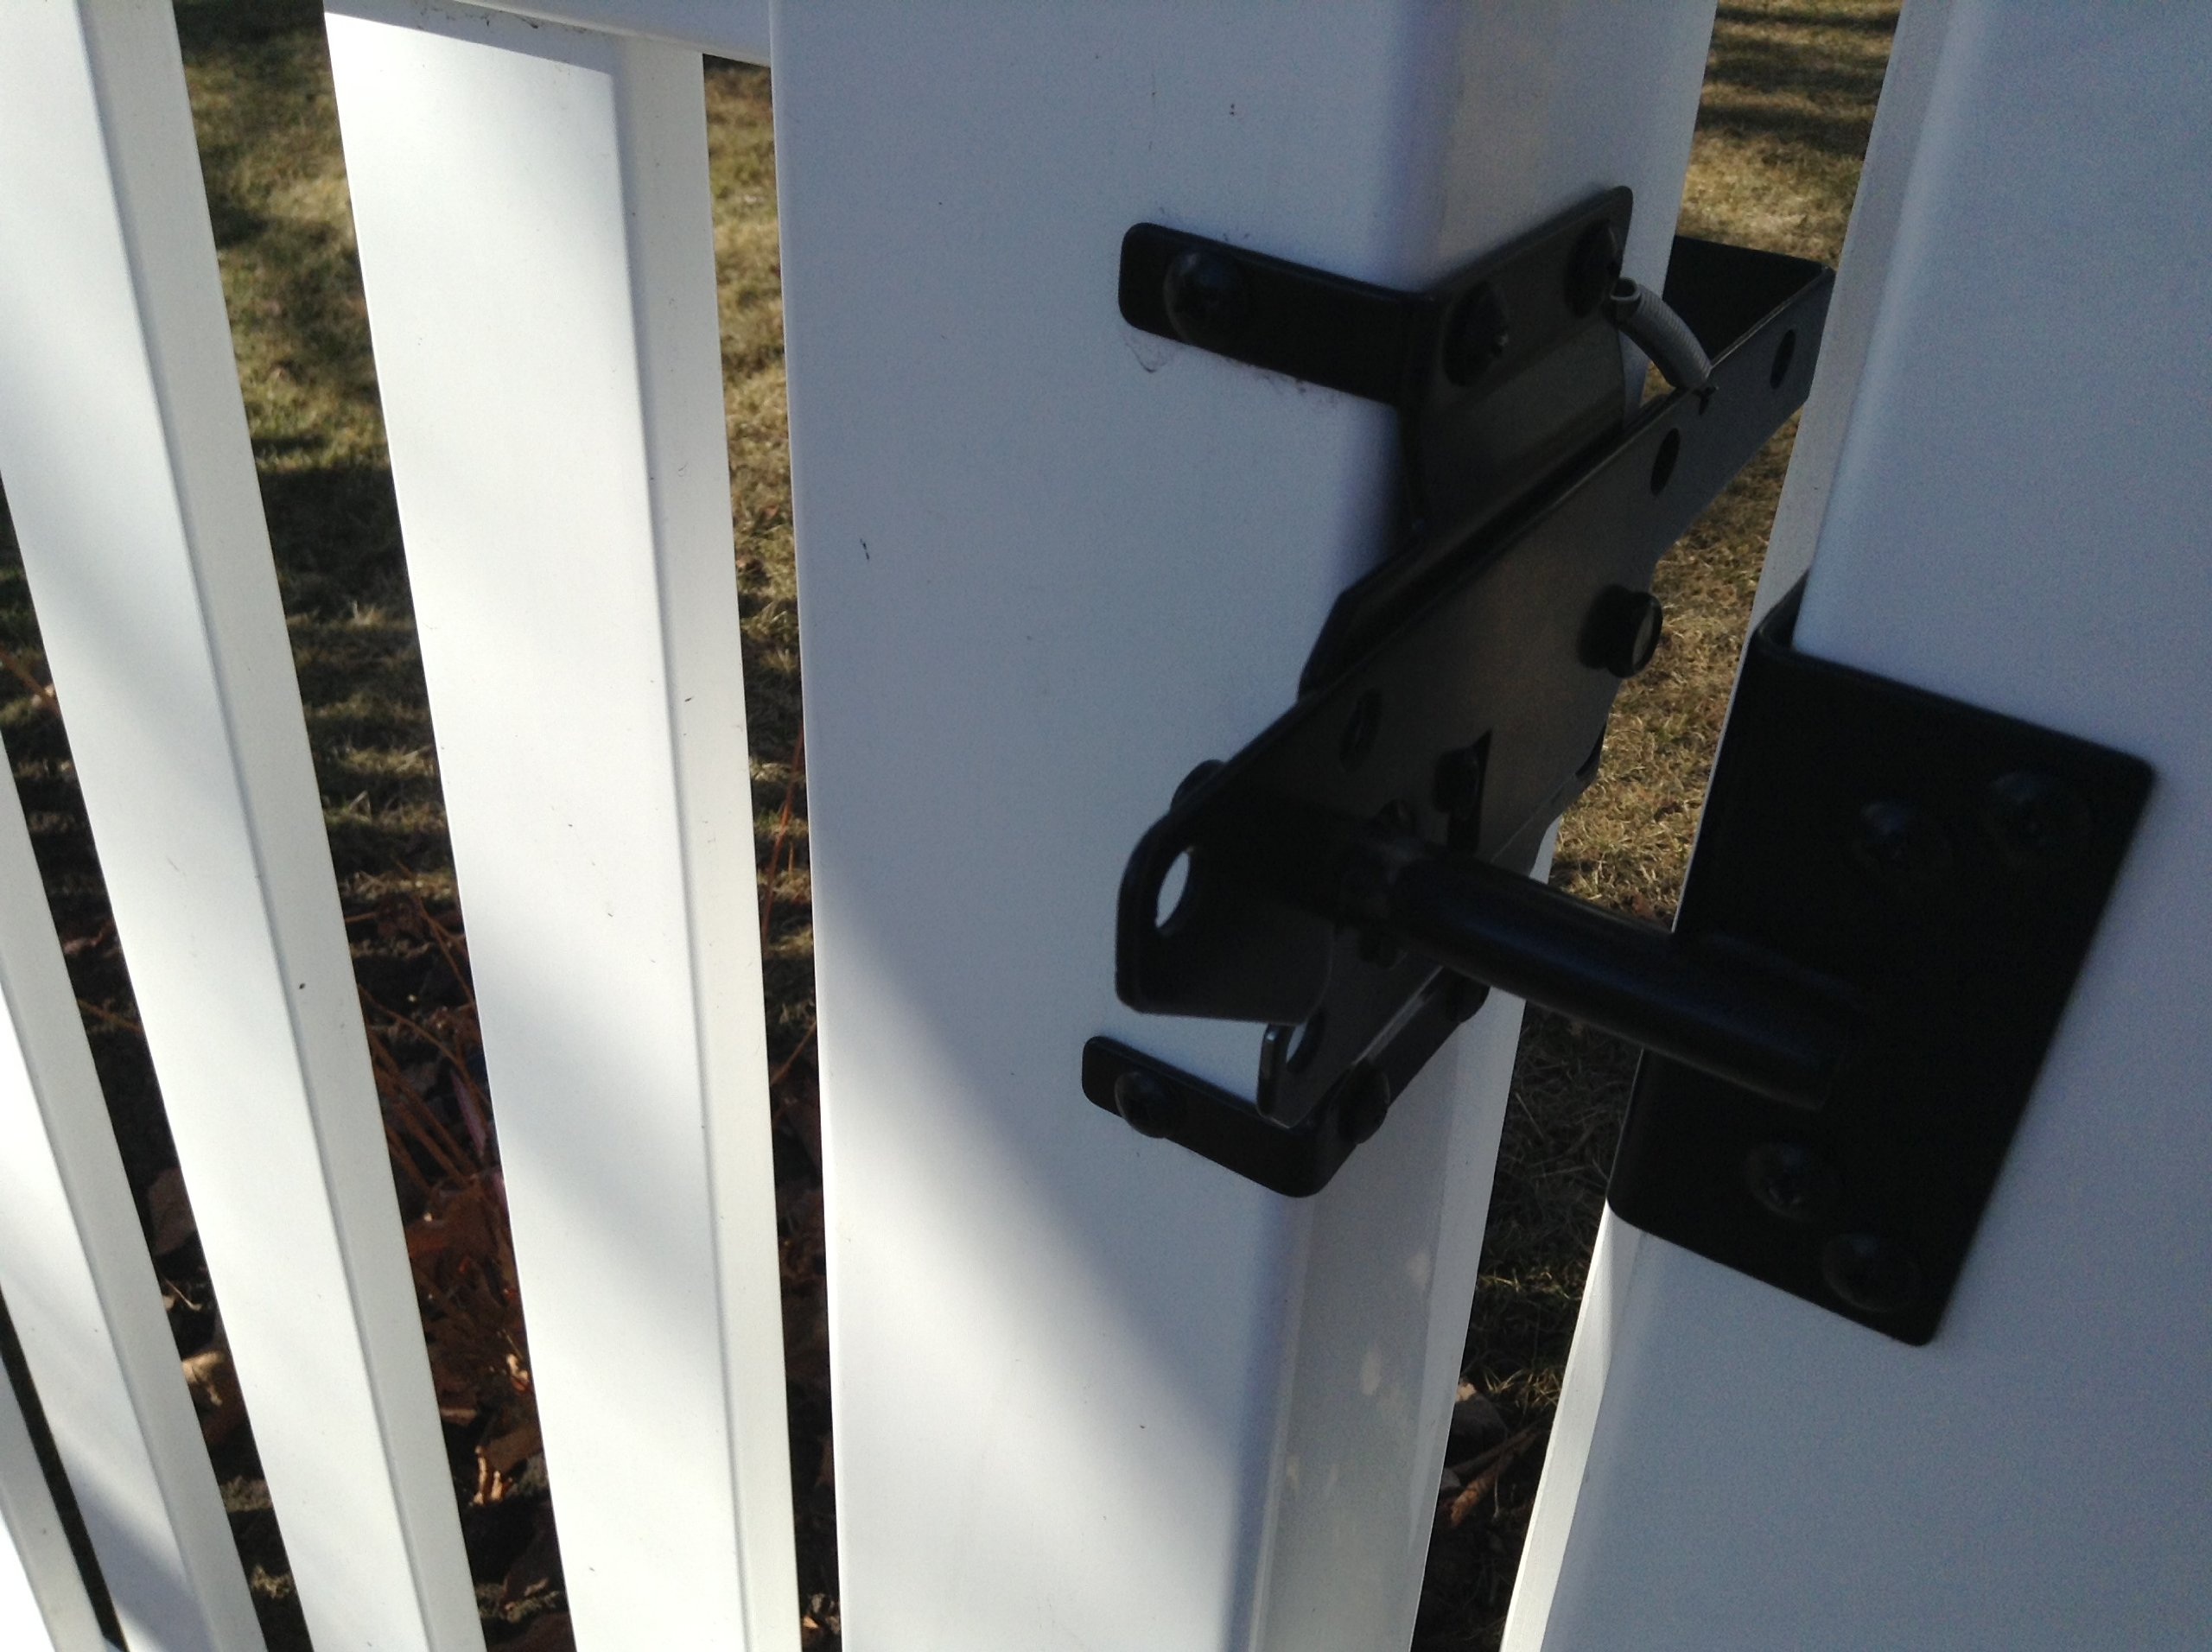 Vinyl Fence Gate Latch by Nationwide Industries by Nationwide Industries